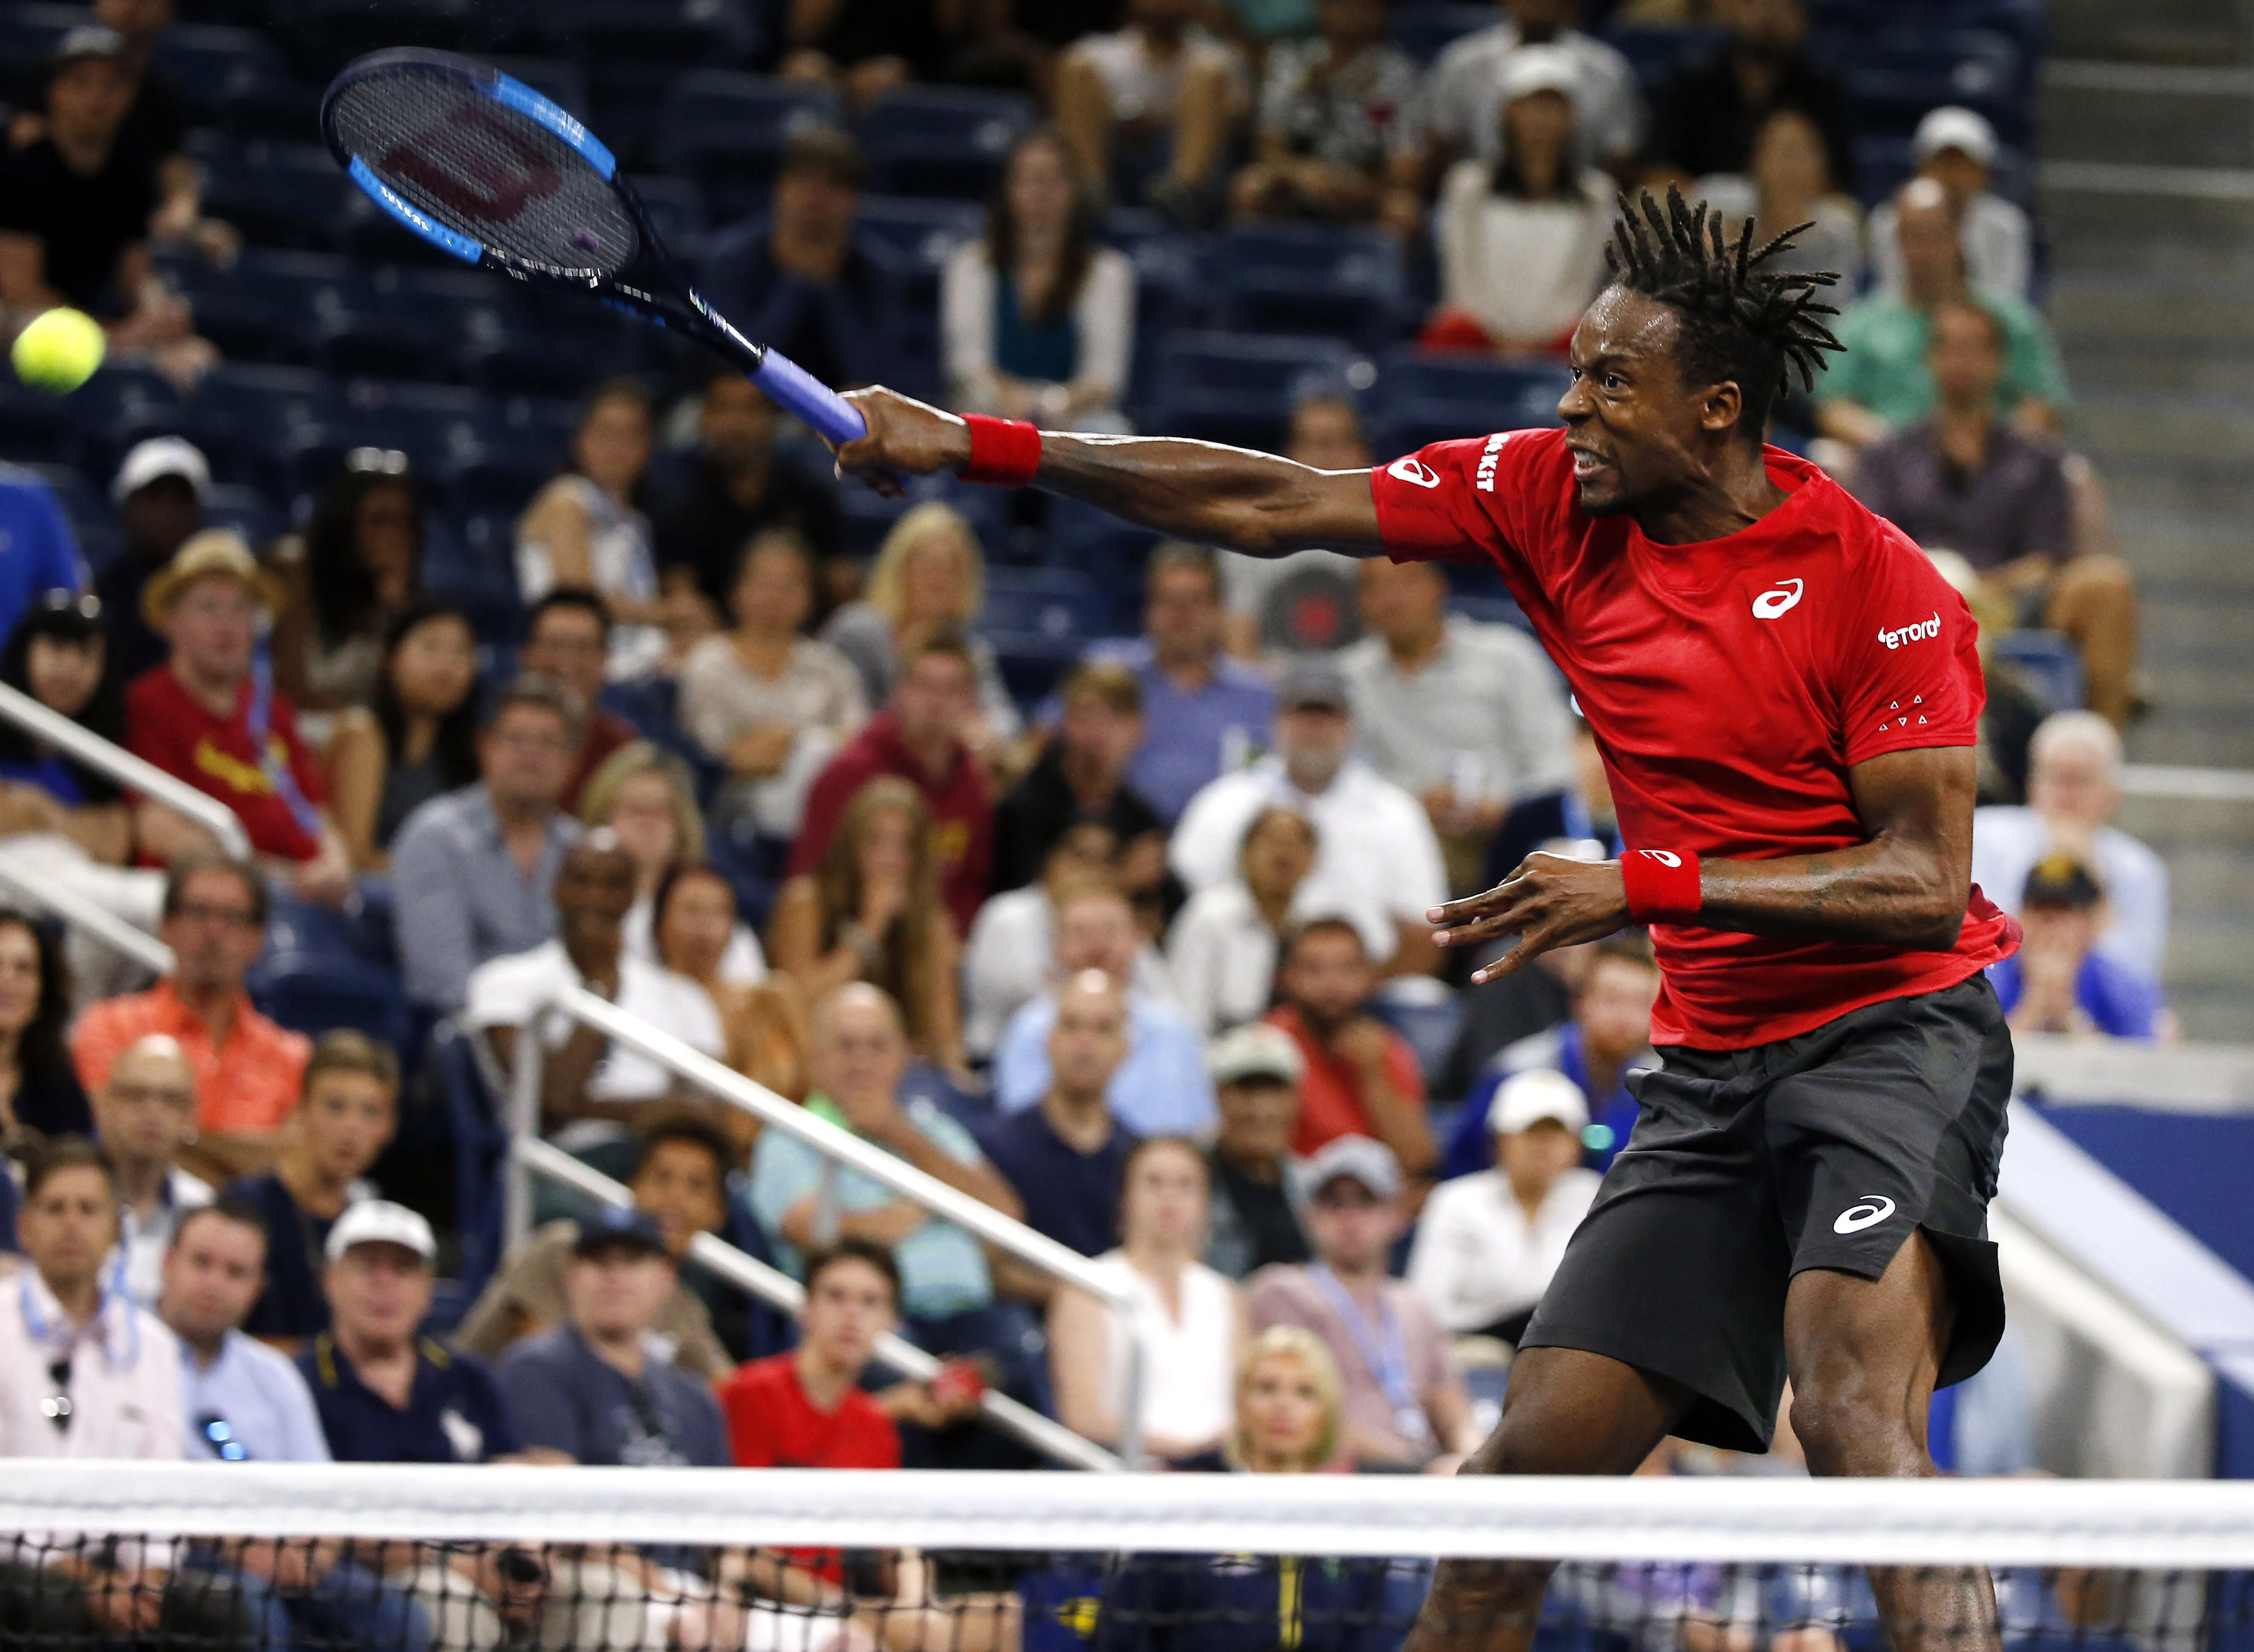 Gael Monfils, of France, returns a shot near the net to Denis Shapovalov, of Canada, during the third round of the U.S. Open tennis tournament Saturday, Aug. 31, 2019, in New York. (AP Photo/Jason DeCrow)